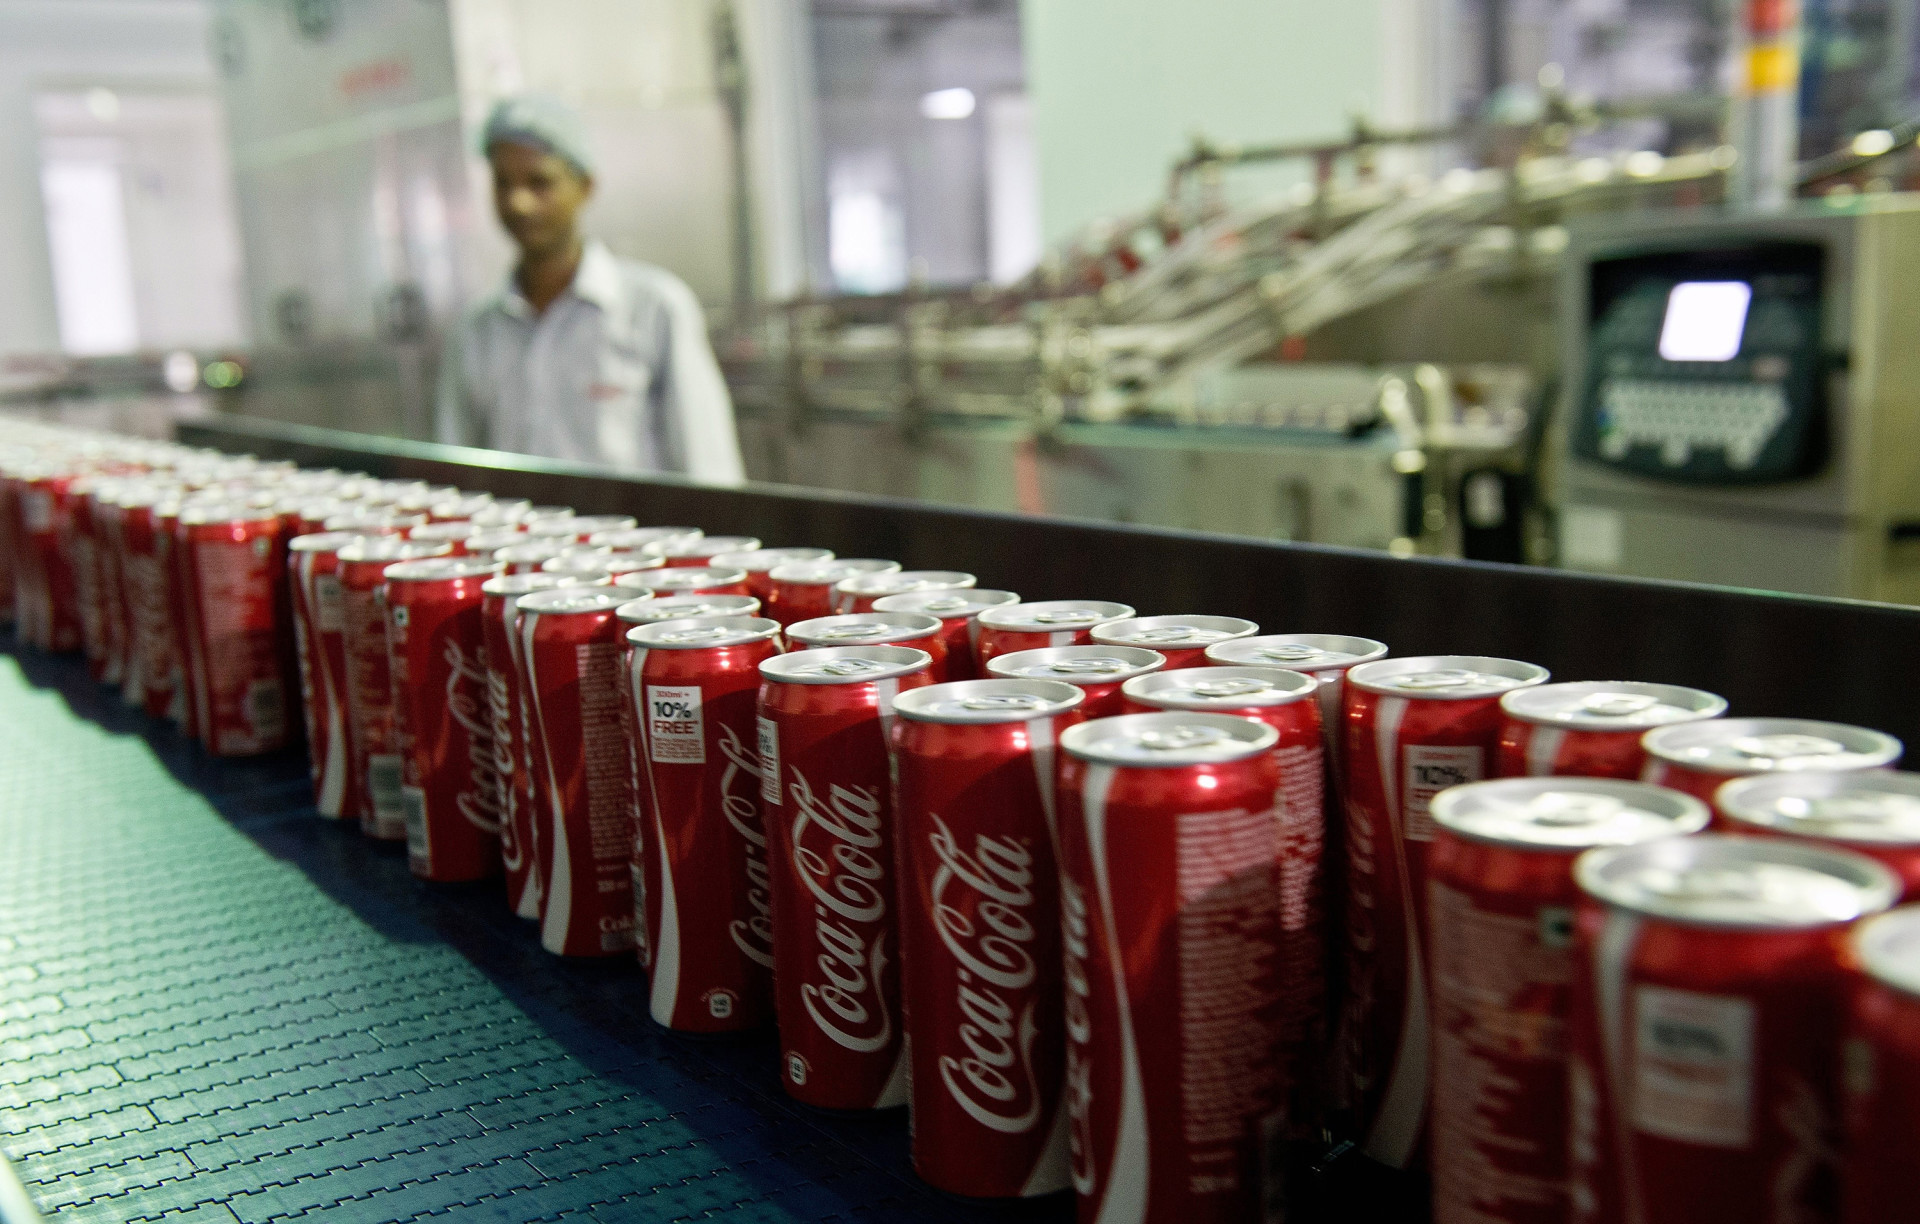 Coca-Cola cans on a production line at a bottling plant near New Delhi in 2013. The company decided in April 2015 not to build an $81 million bottling plant in southern India because local farmers said it might exhaust groundwater supplies.